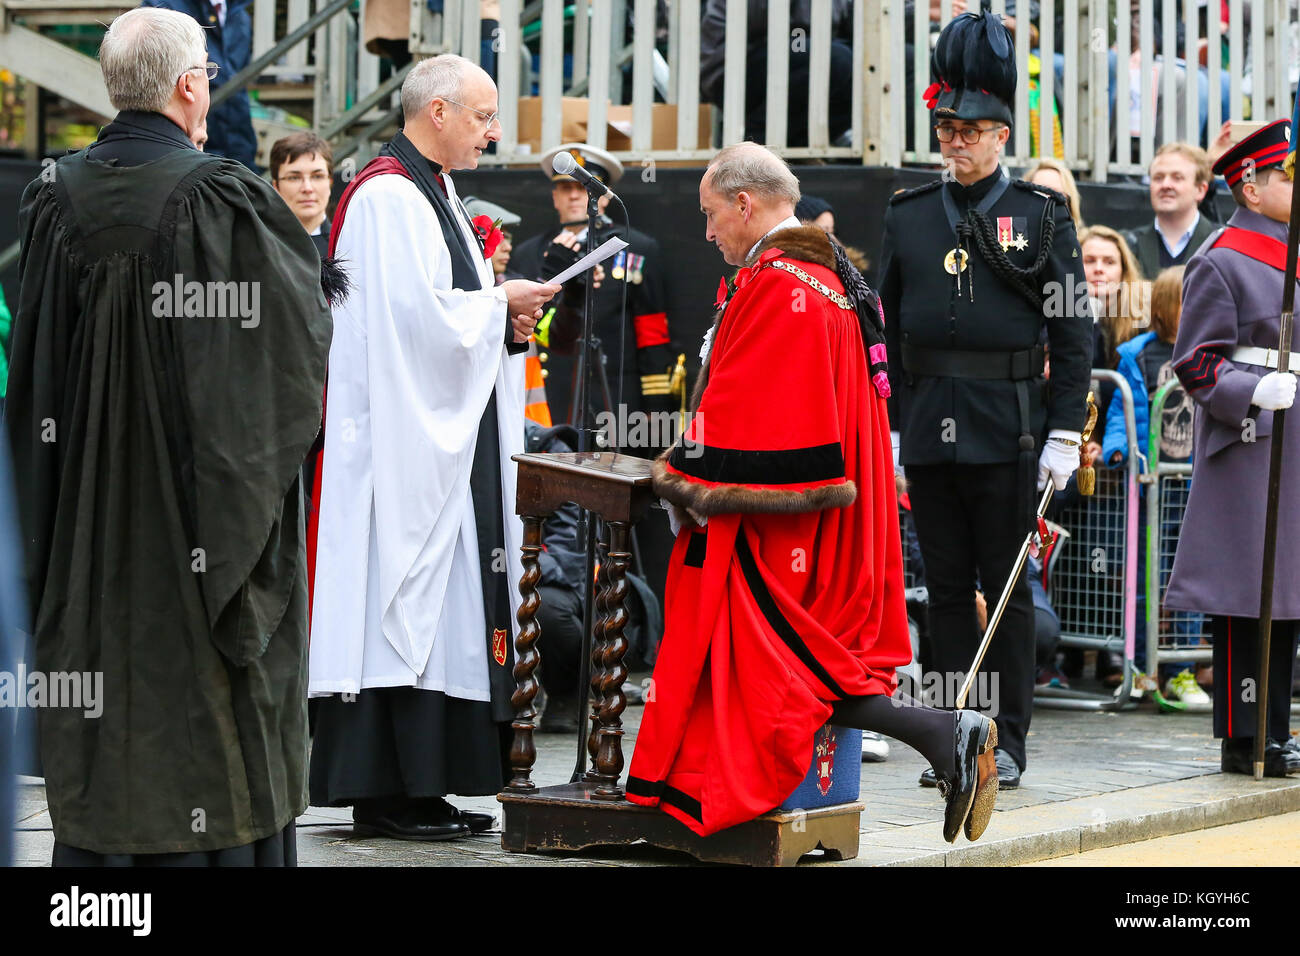 St Paul's Cathedral. London. UK. 11 Nov 2017 - Lord Mayor, Charles Bowman is blessed during the The Lord Mayor - Stock Image